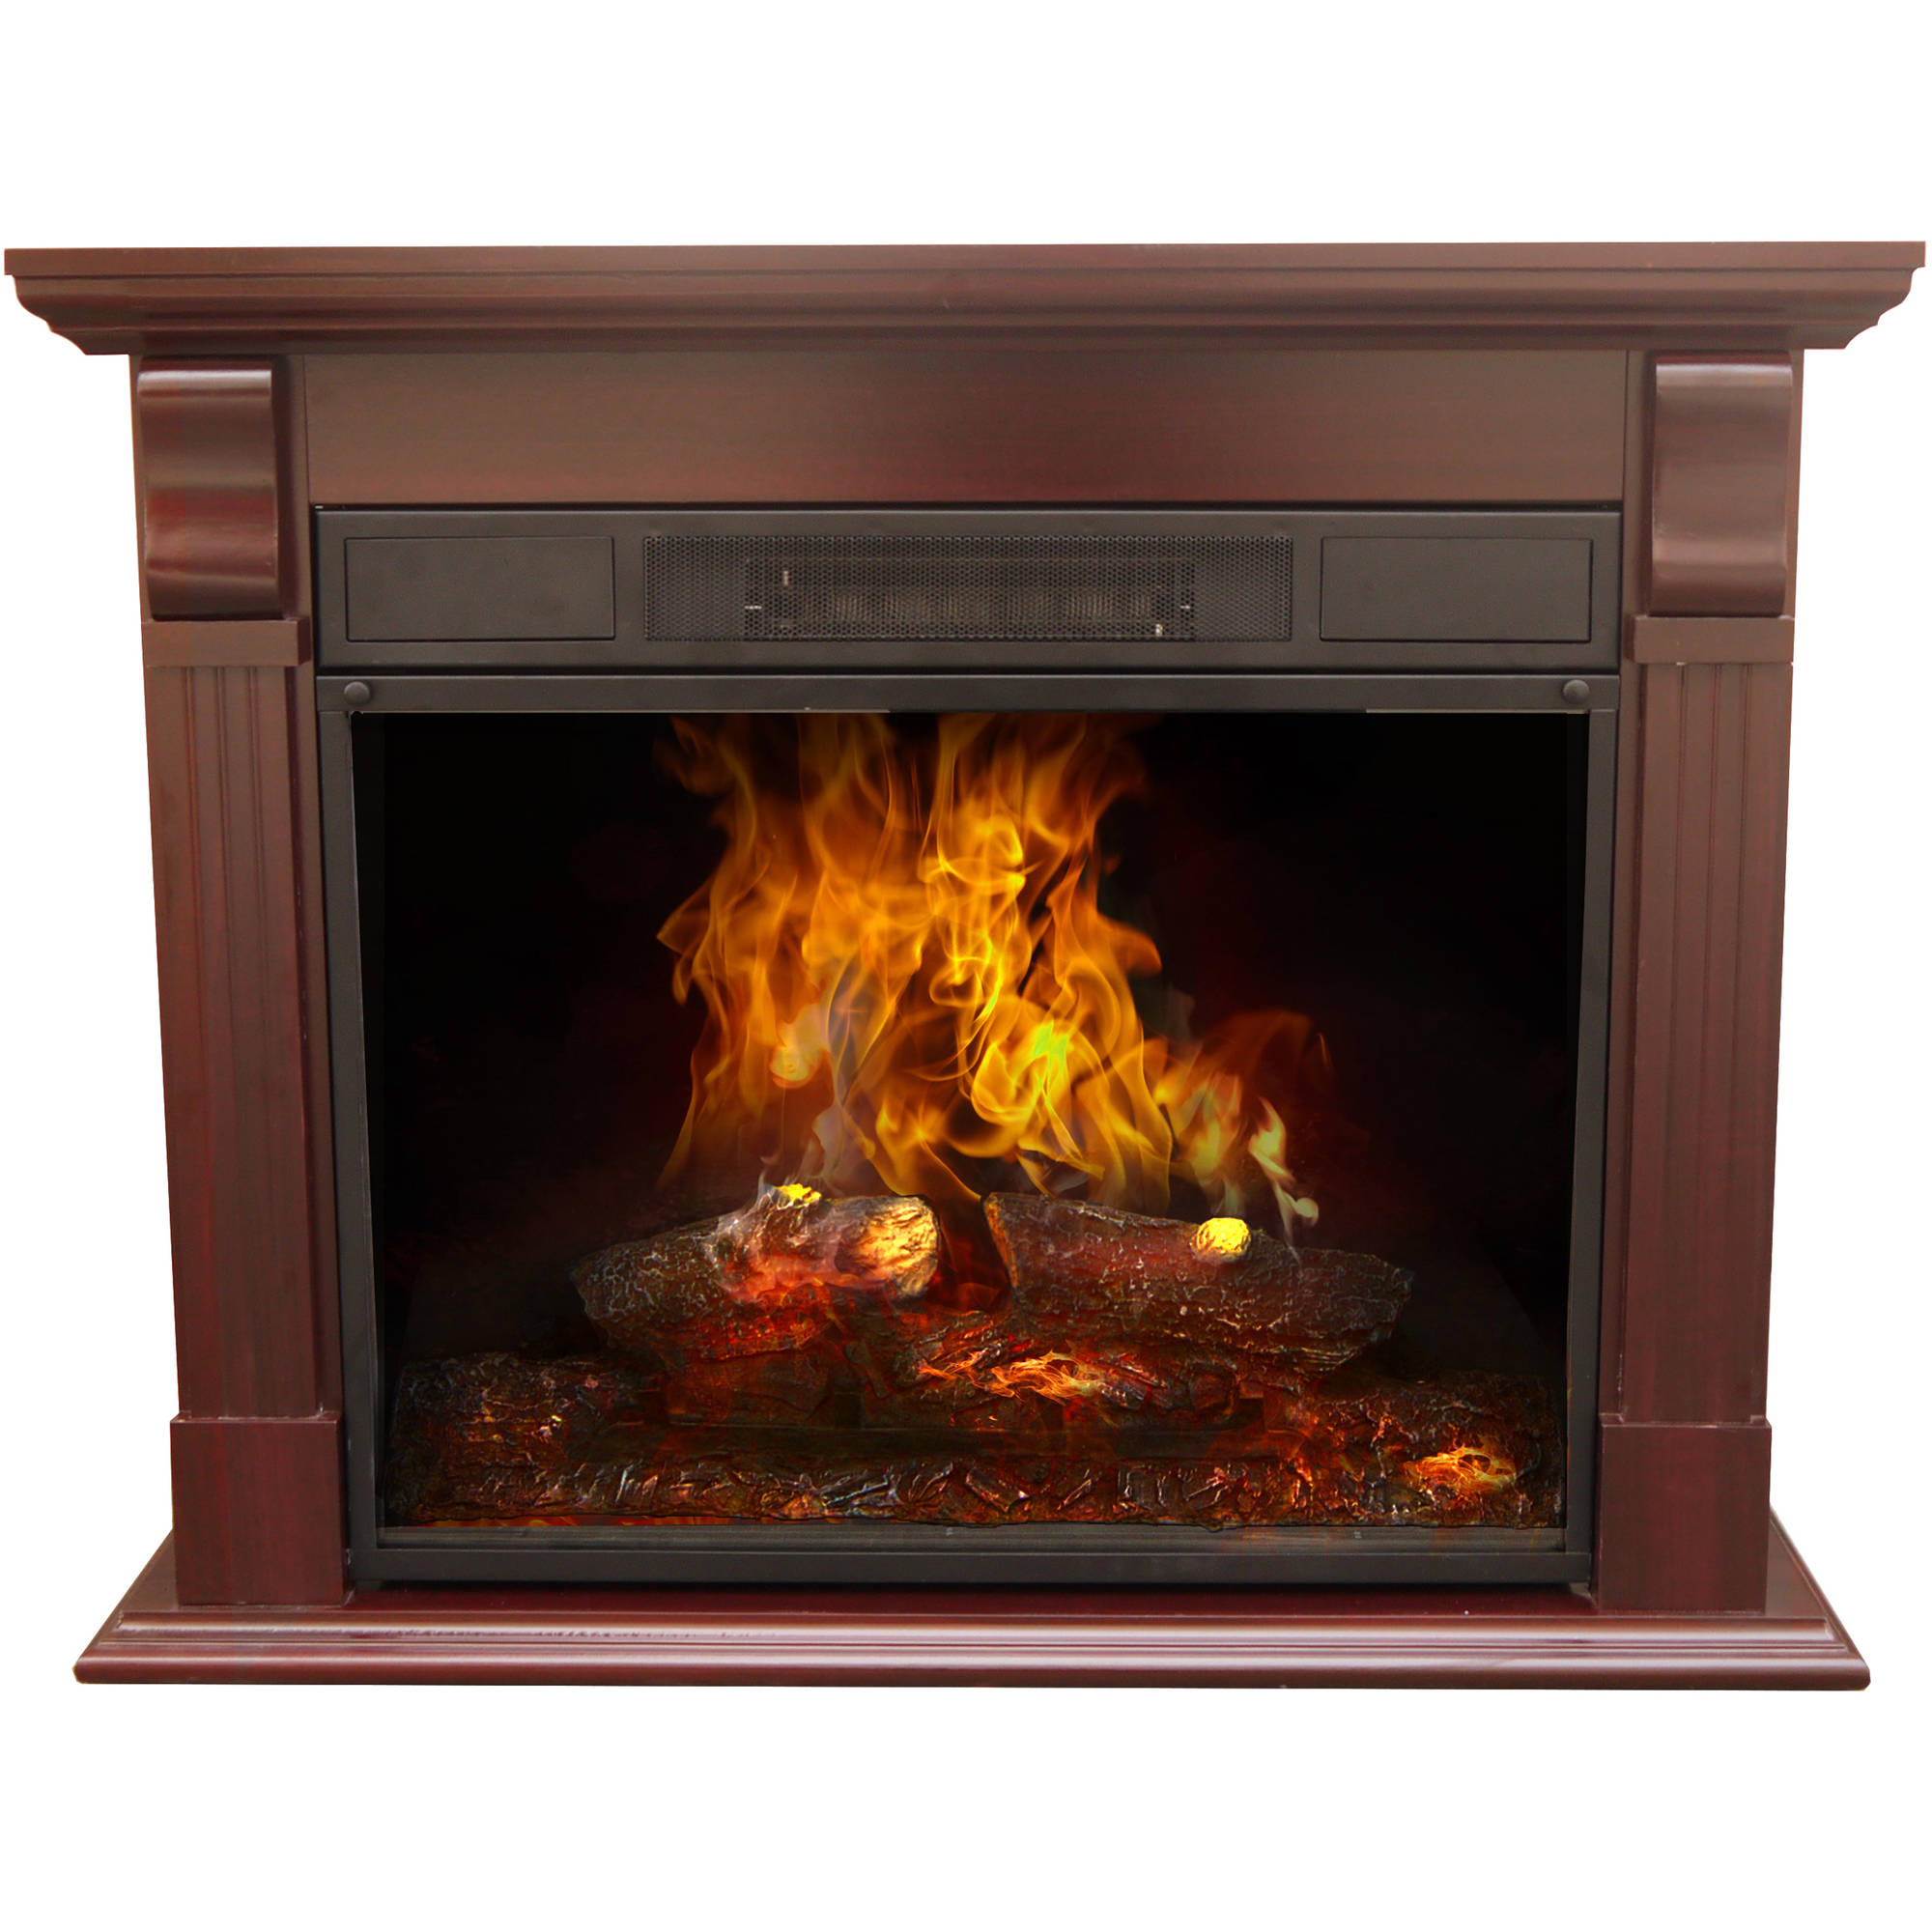 "Decor Flame Electric Fireplace with 33"" Mantle"